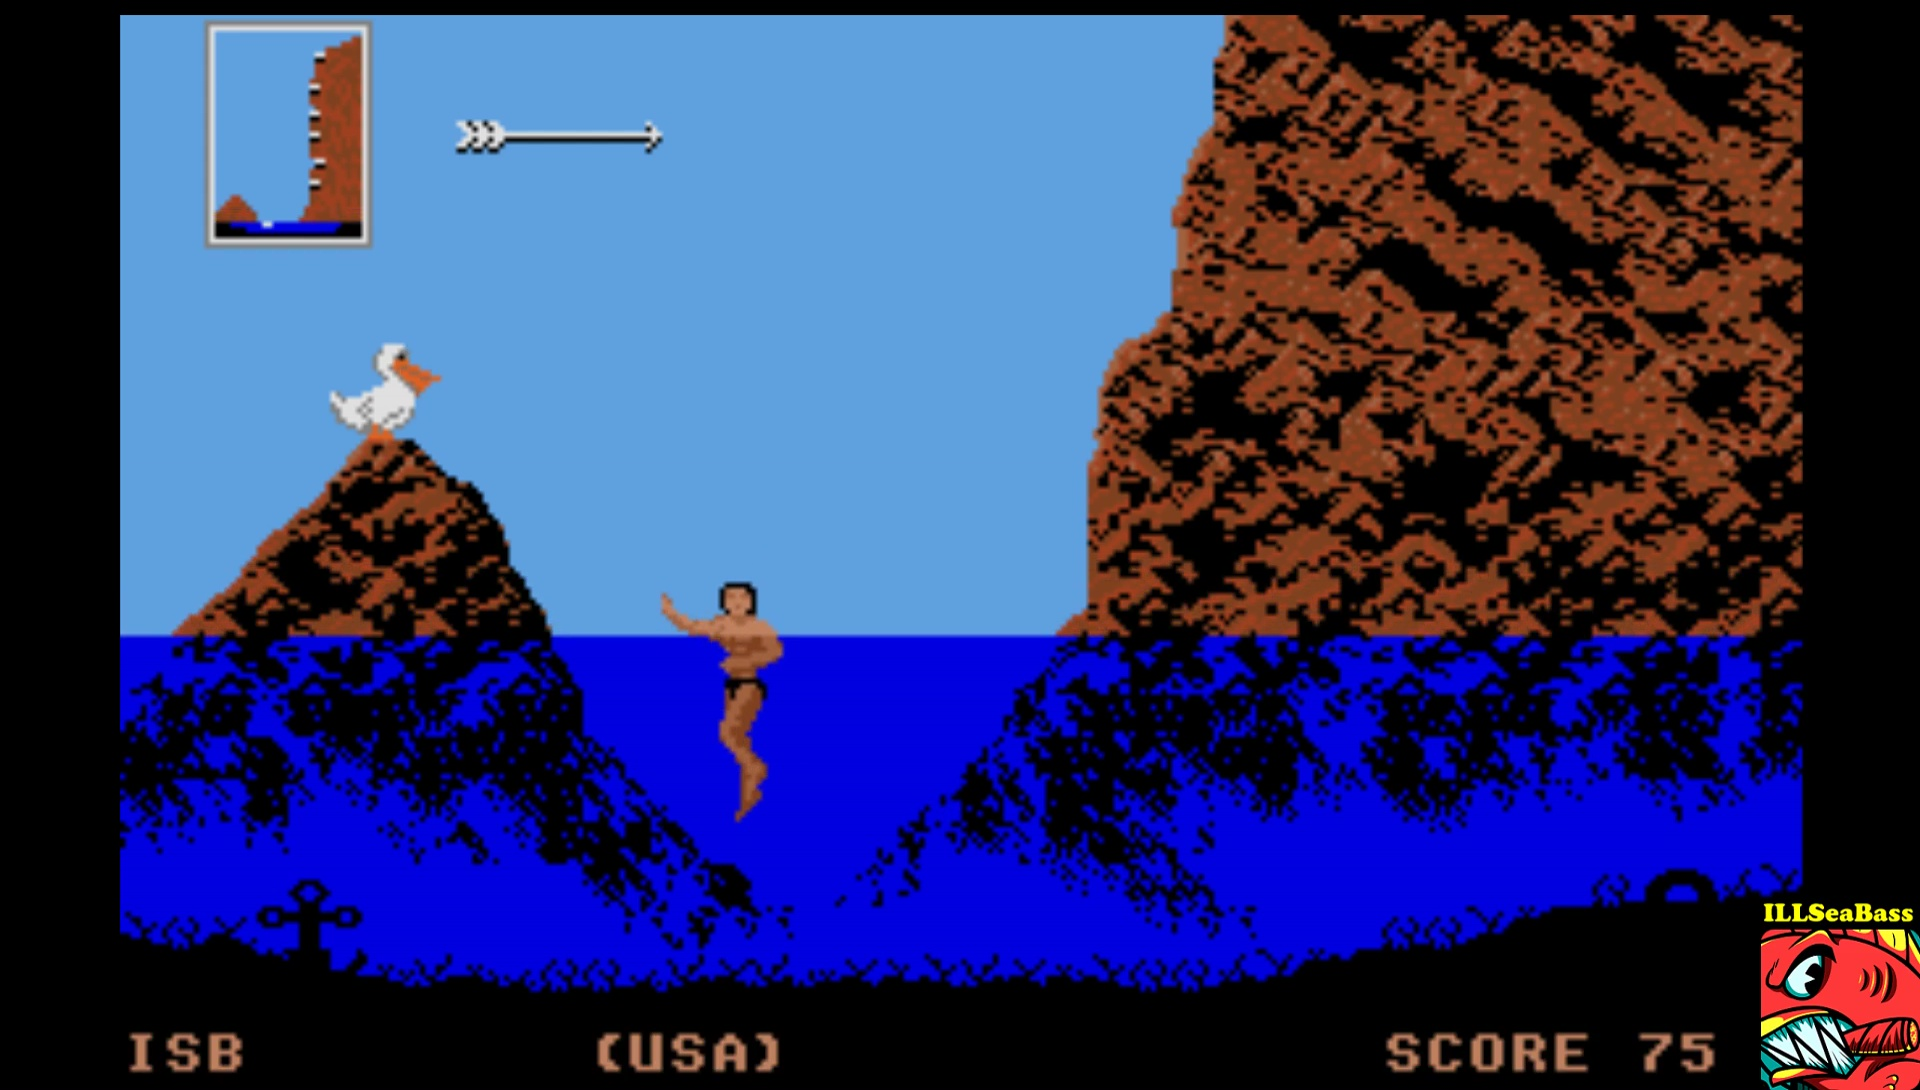 ILLSeaBass: World Games: Cliff Diving (Atari ST Emulated) 75 points on 2017-03-26 15:16:09